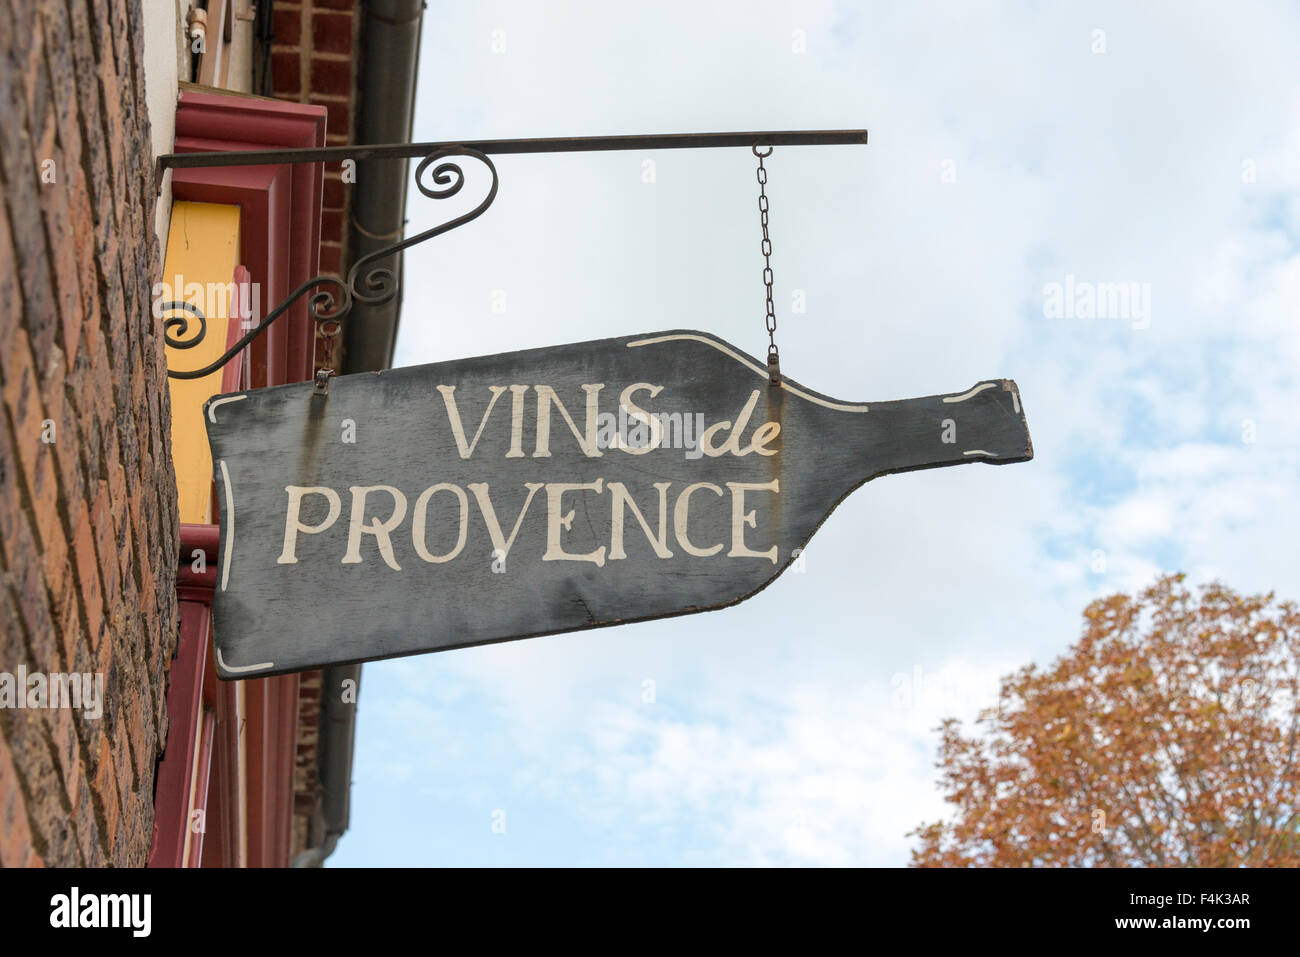 A Vin de Provence or wine of Provence sign outside a wine shop in Provence Frnace - Stock Image